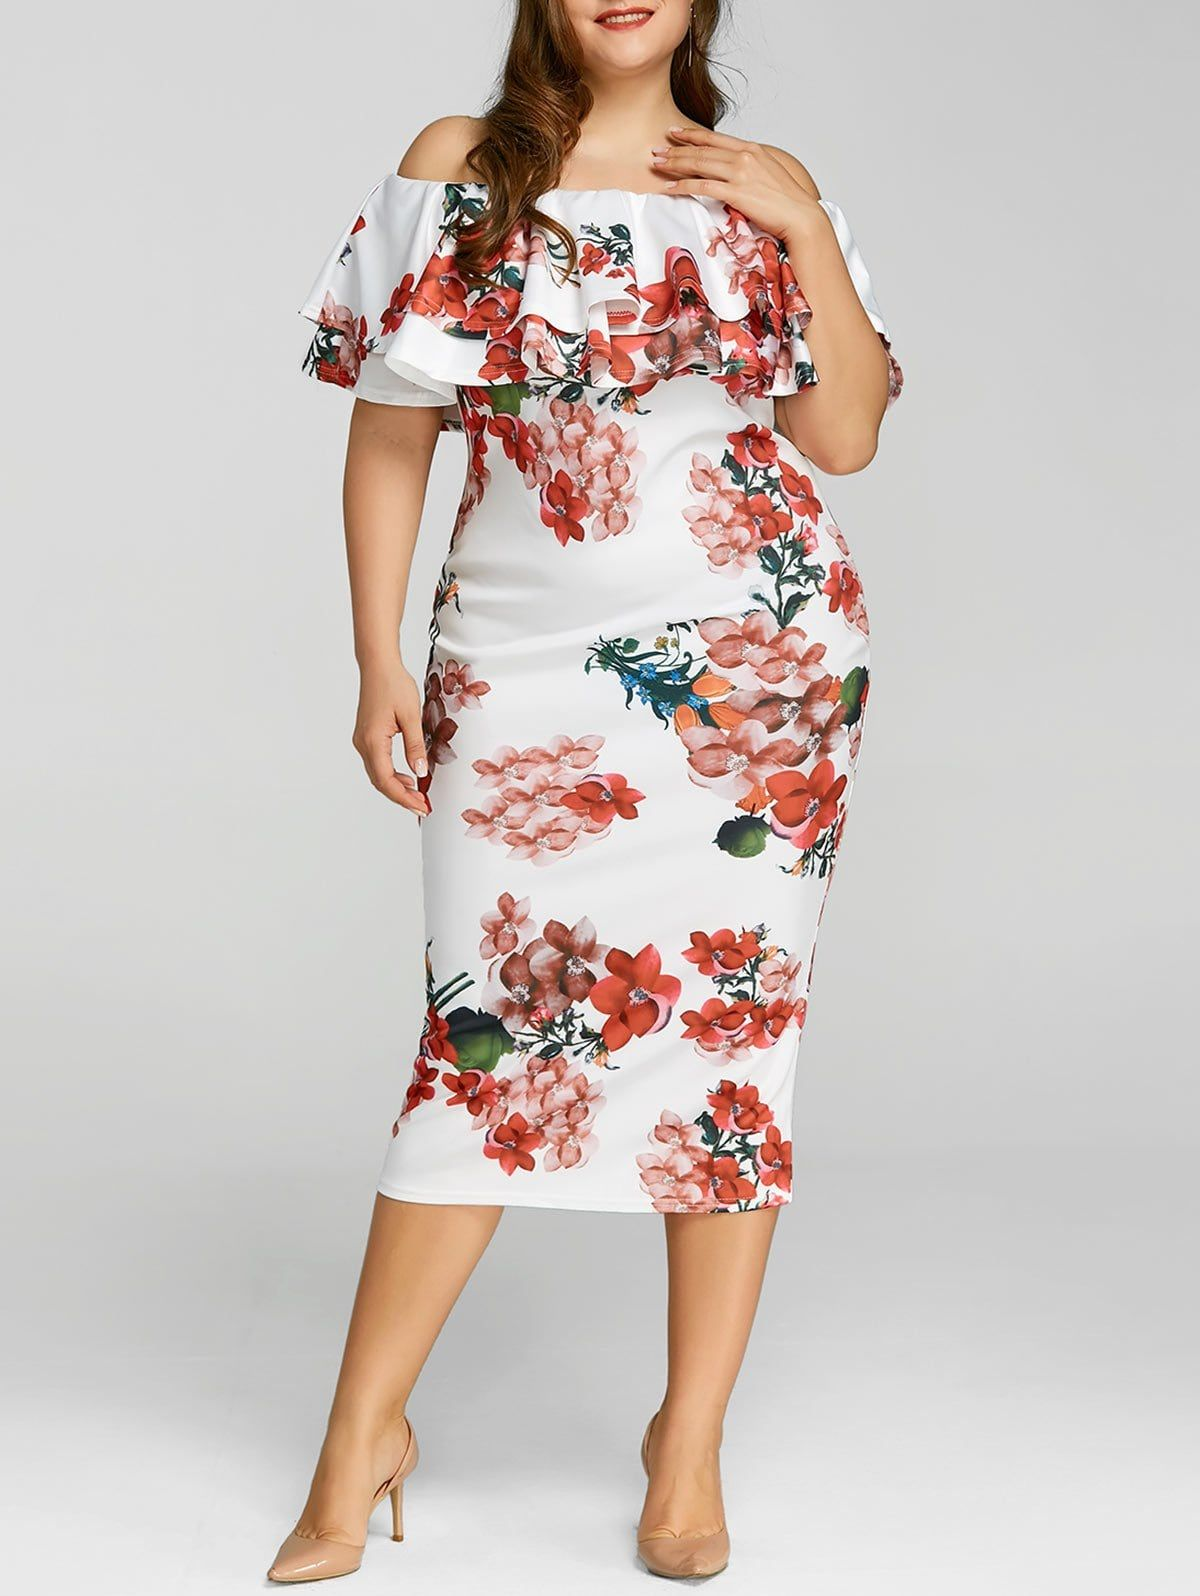 Plus Size Ruffle Floral Print Dress in 2019 | Plus size ...